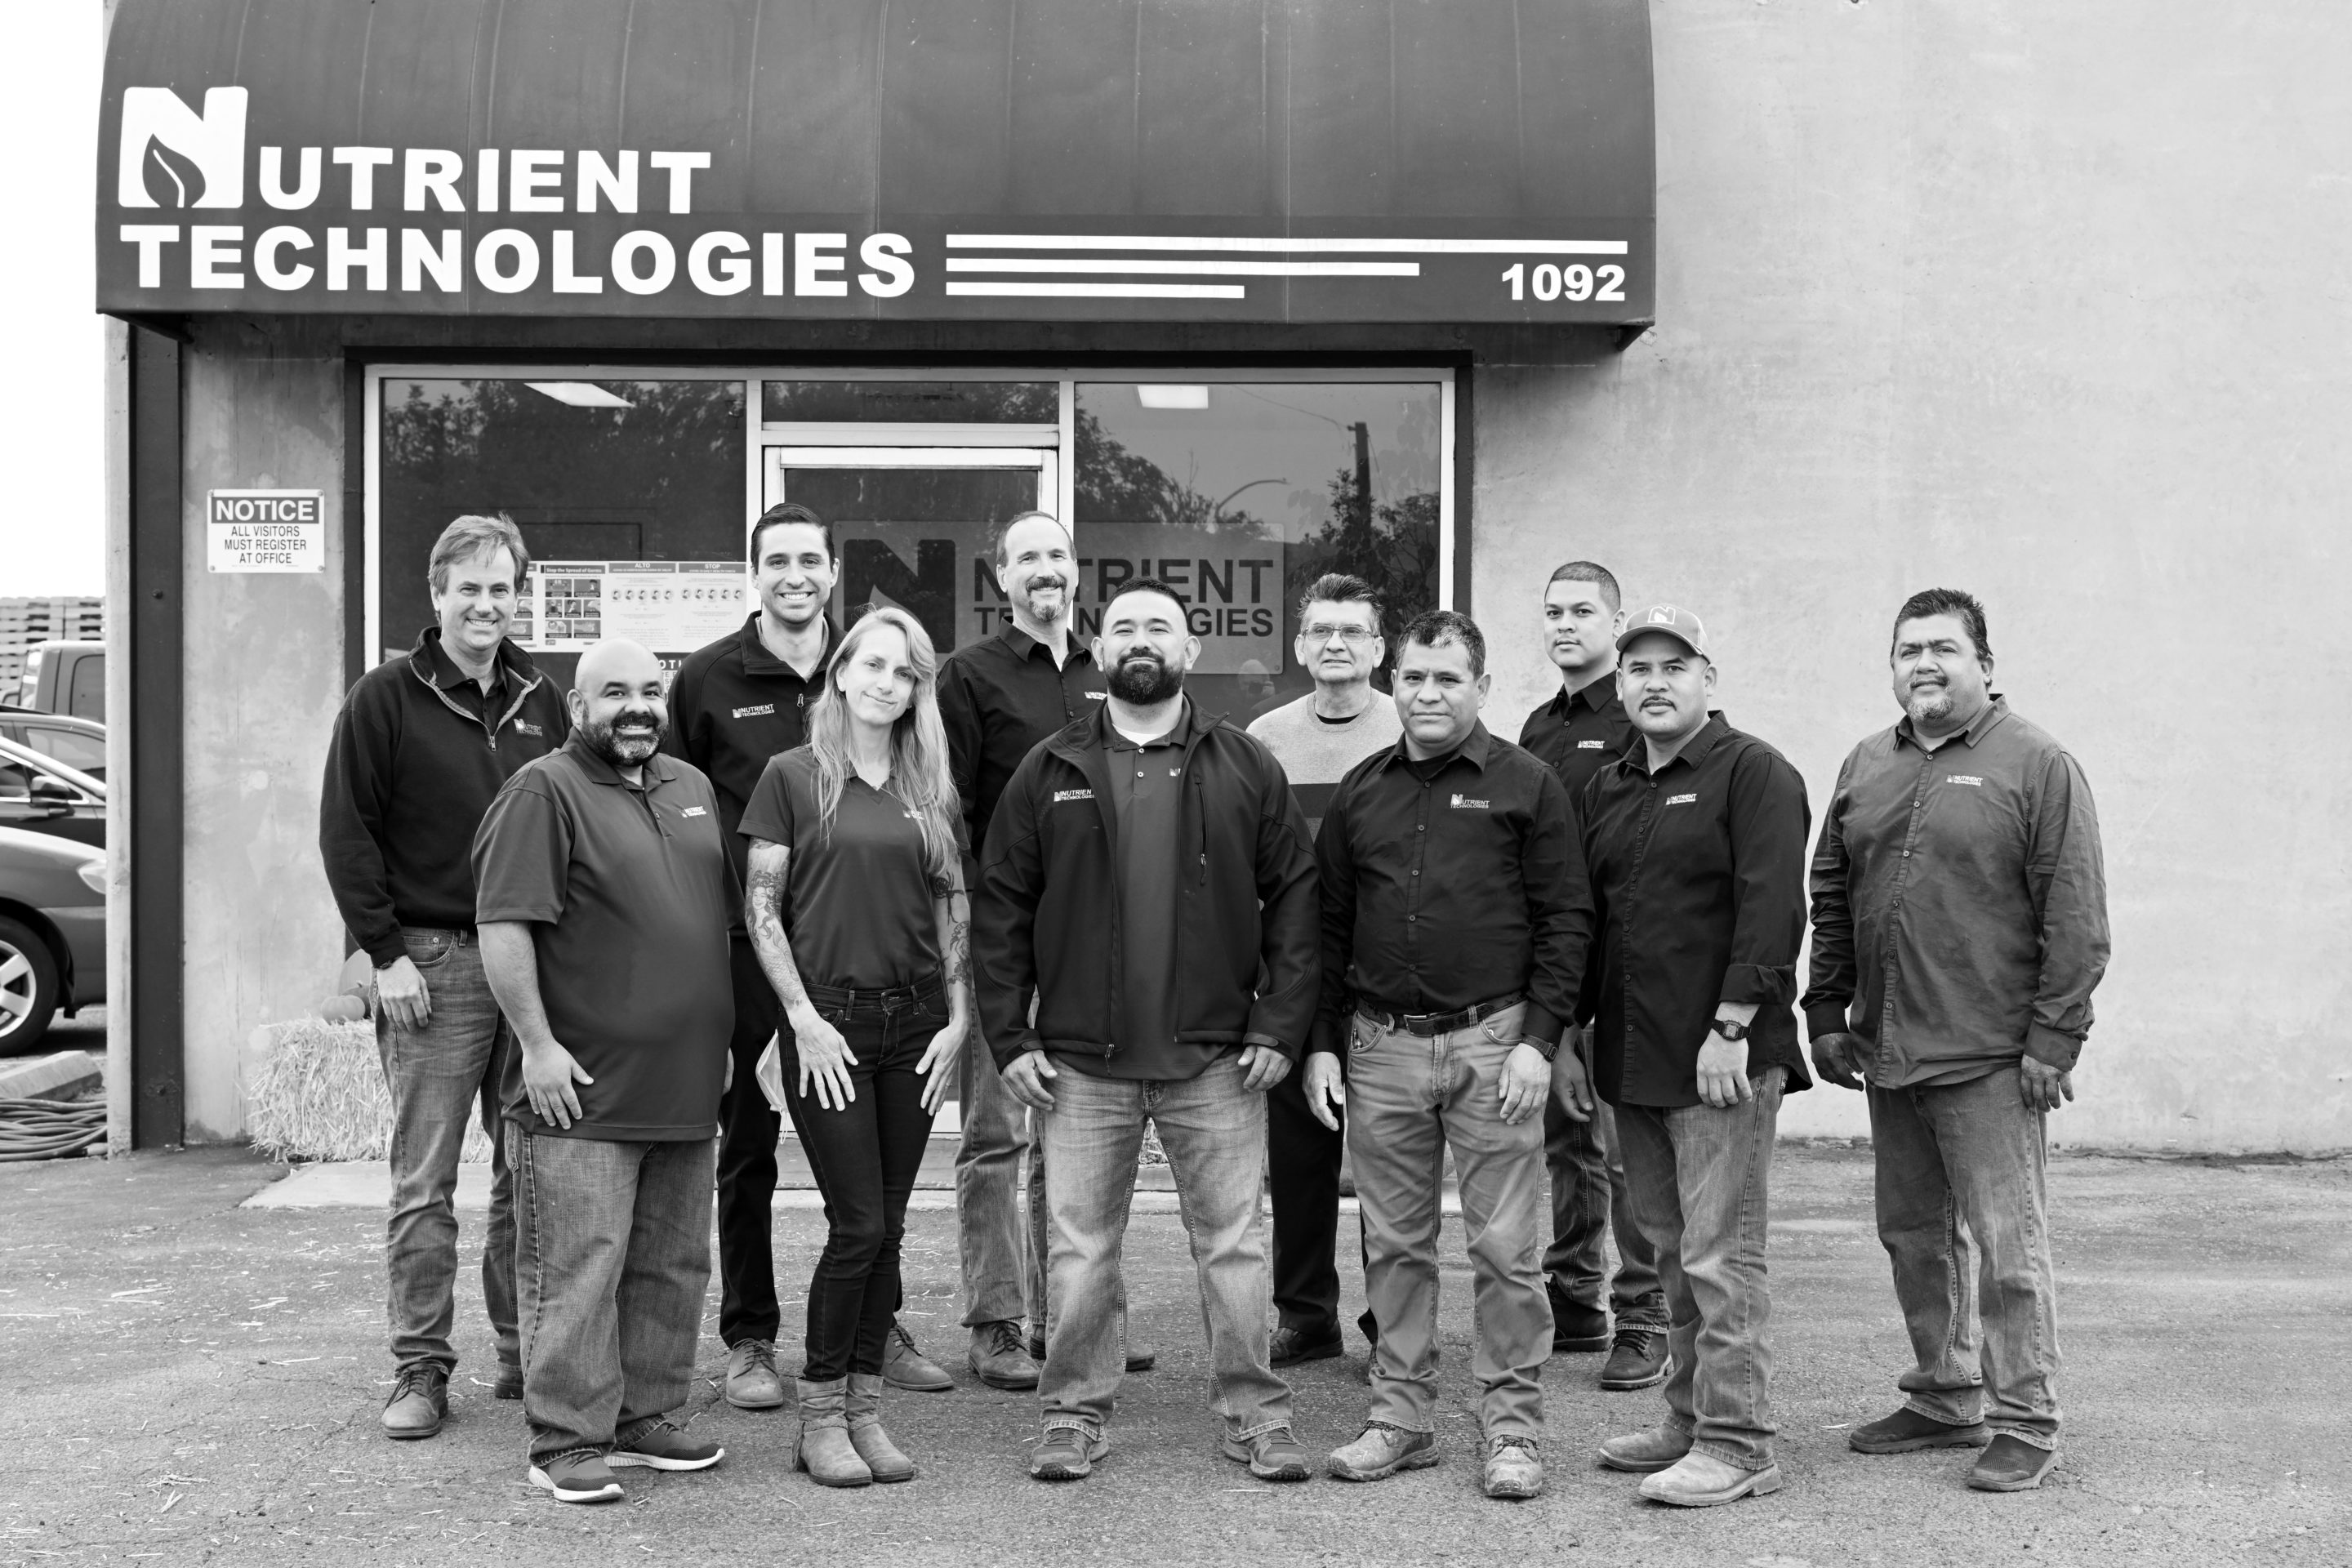 Nutrient Technologies Celebrates 35 Years in the San Joaquin Valley